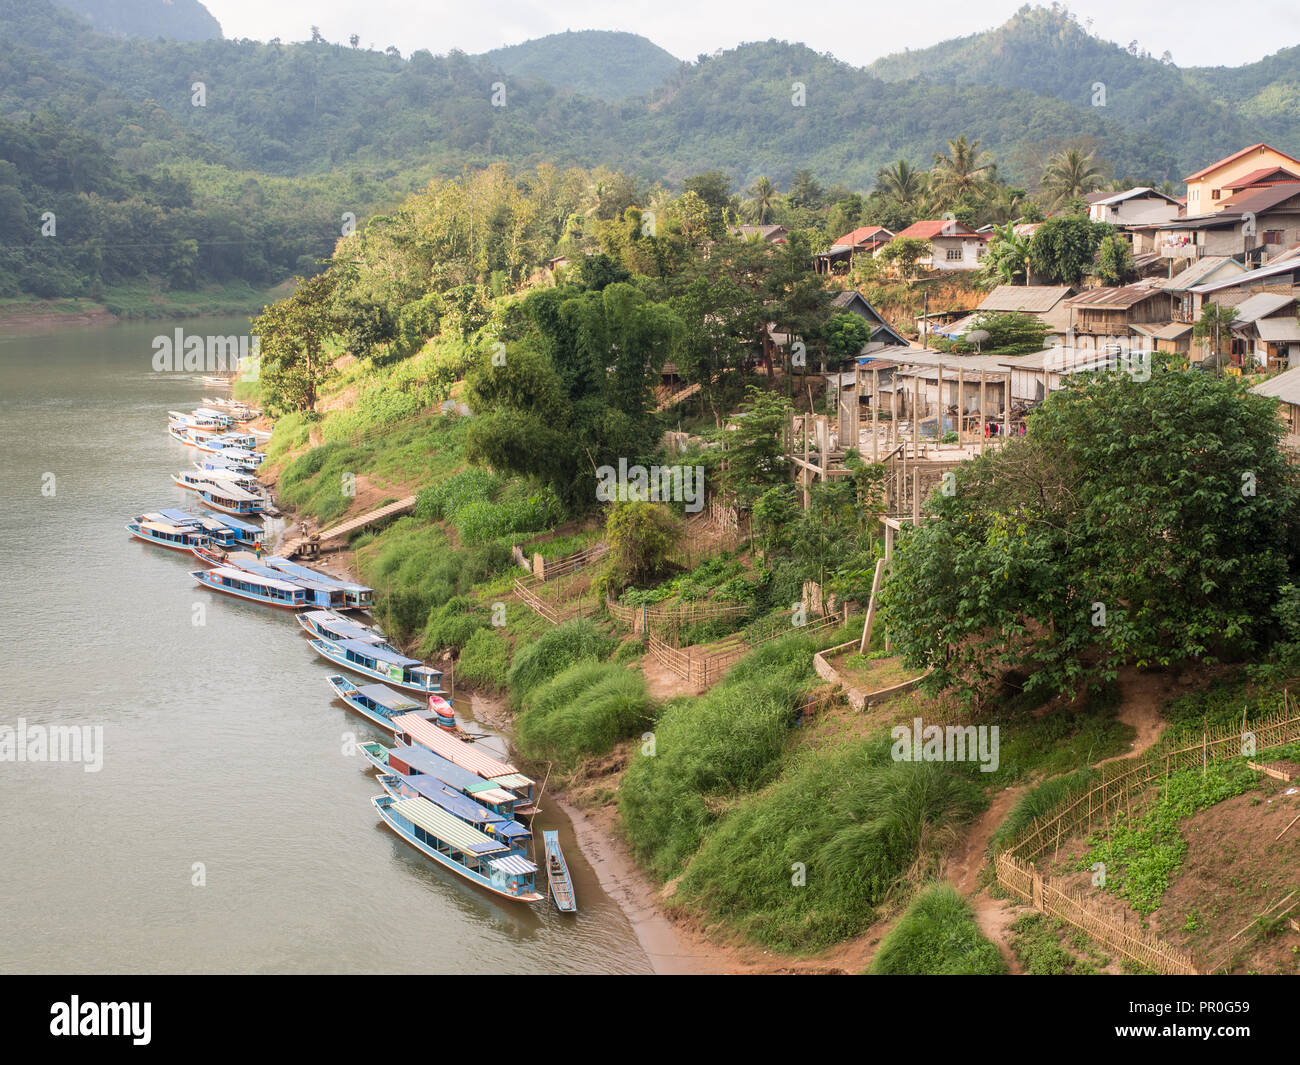 Riverboats on the Nam Ou River, Nong Khiaw, Laos, Indochina, Southeast Asia, Asia Stock Photo